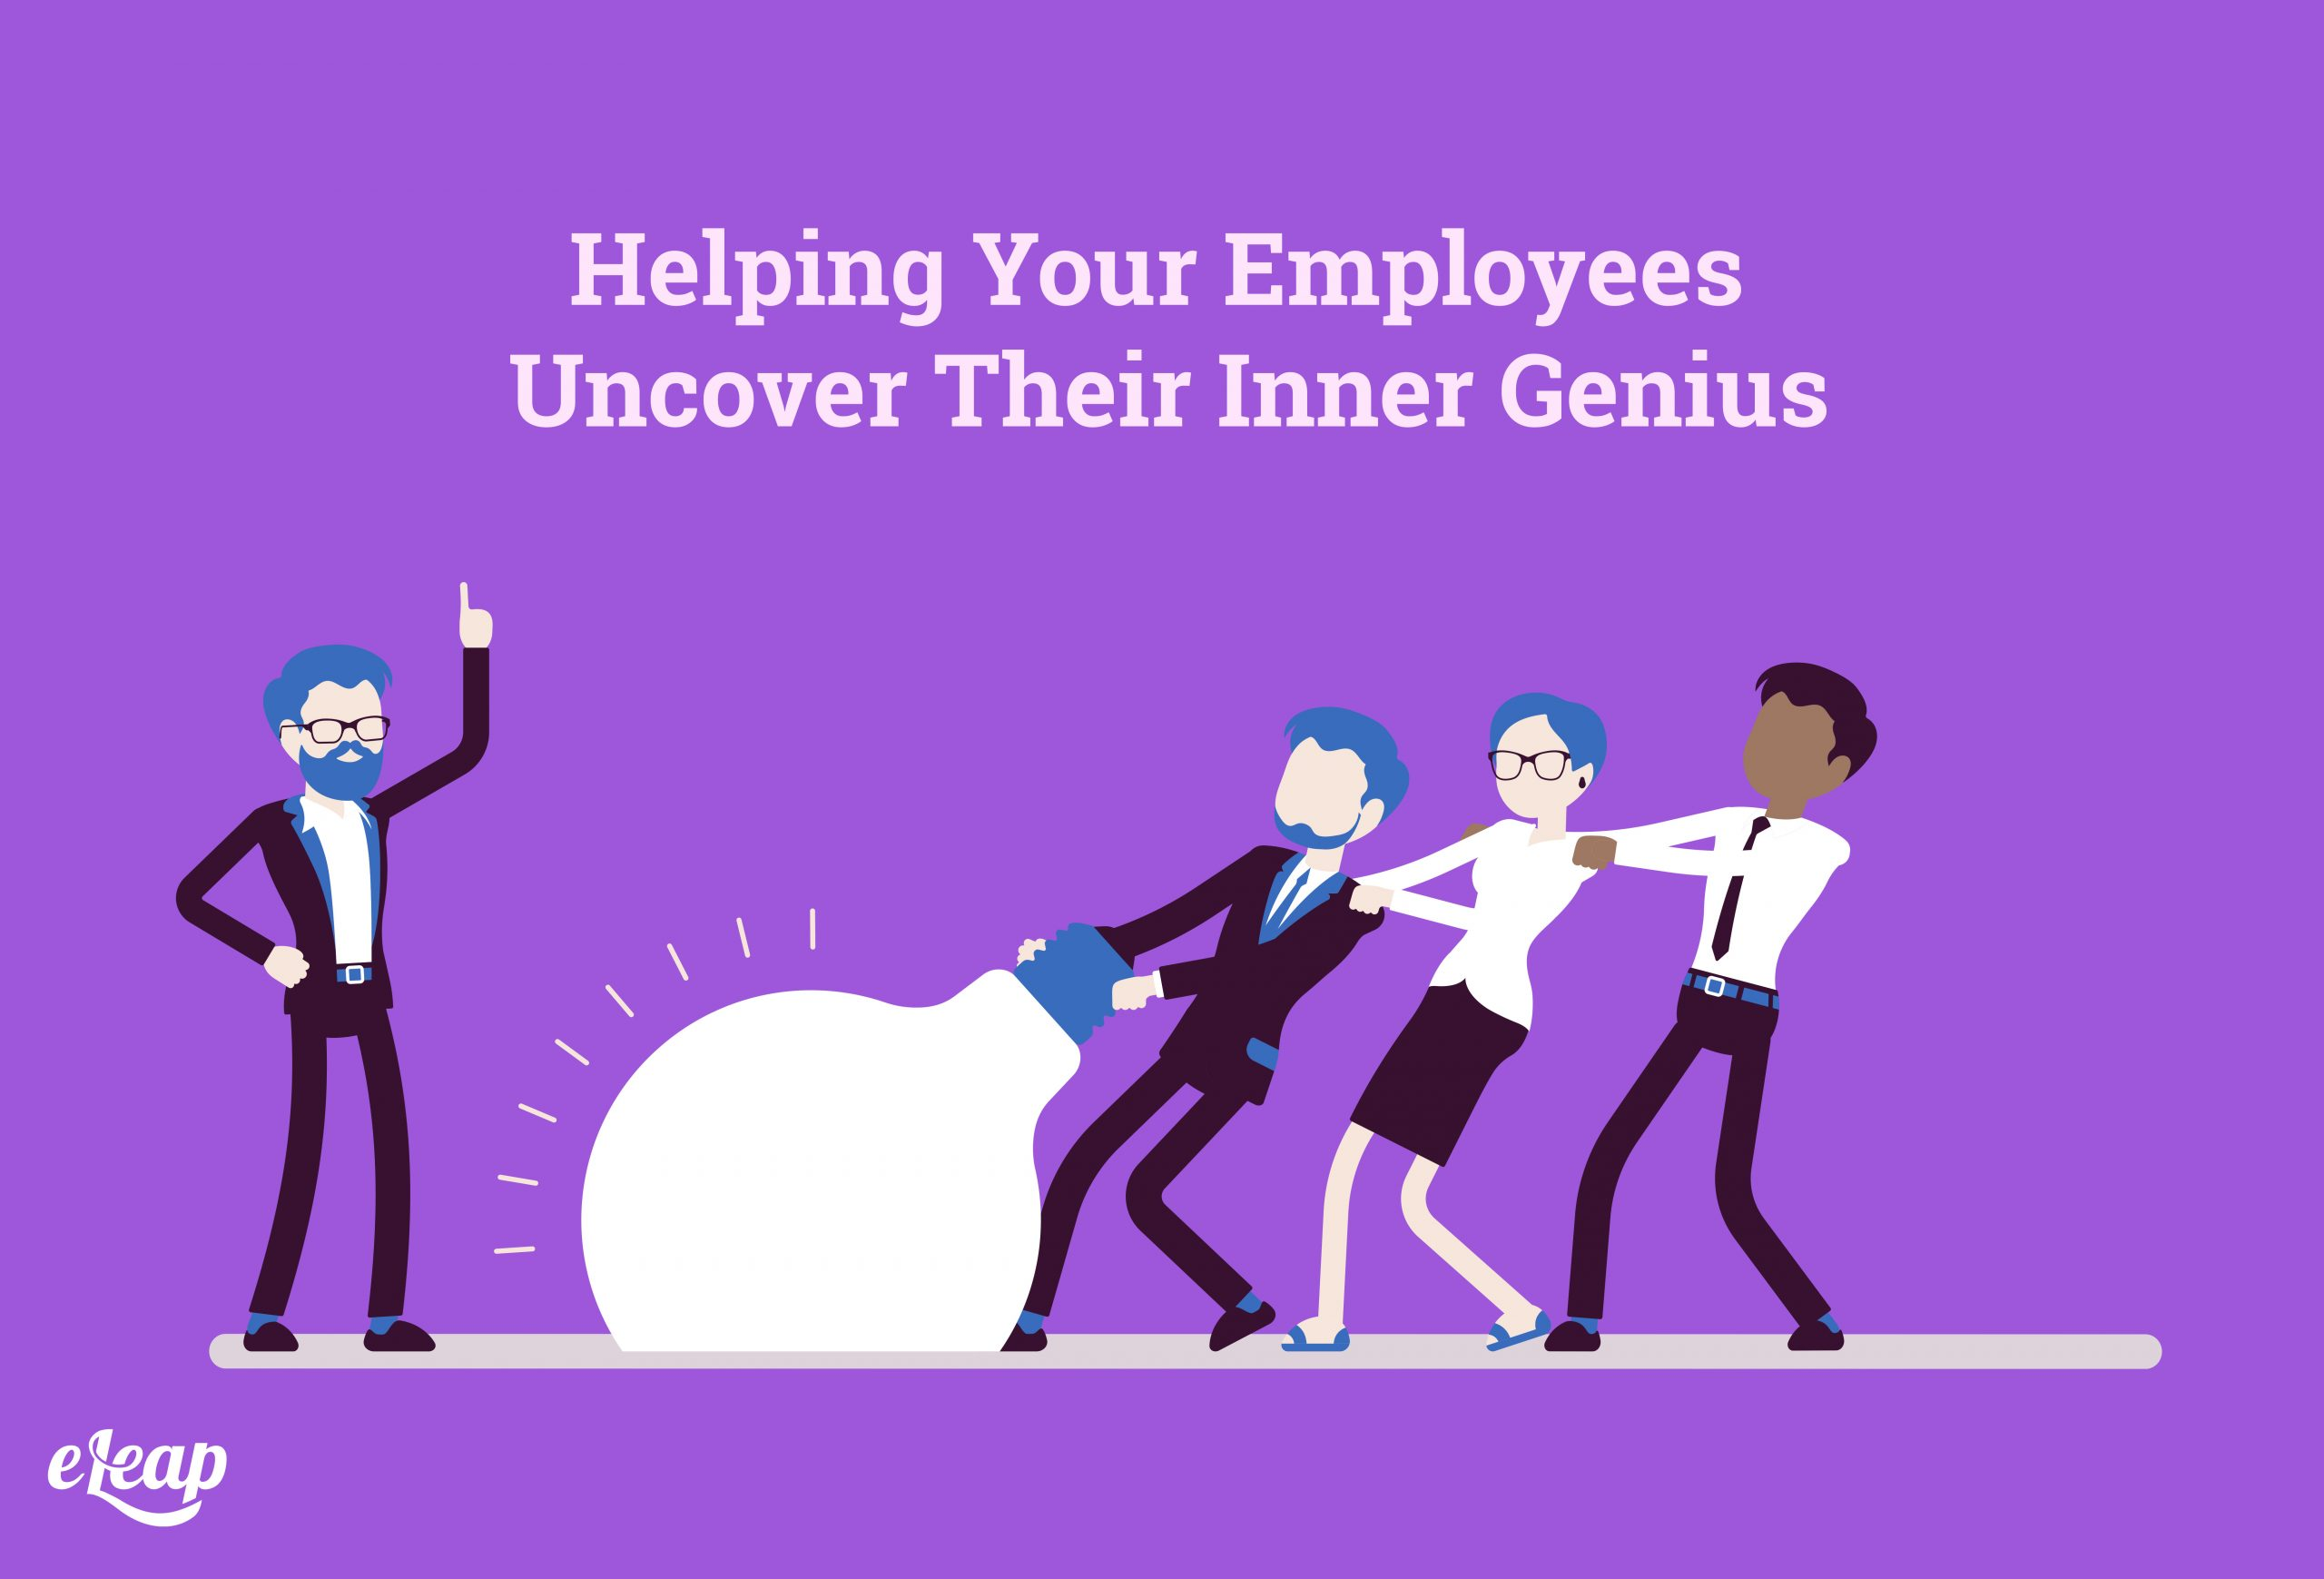 Helping Your Employees Uncover Their Inner Genius